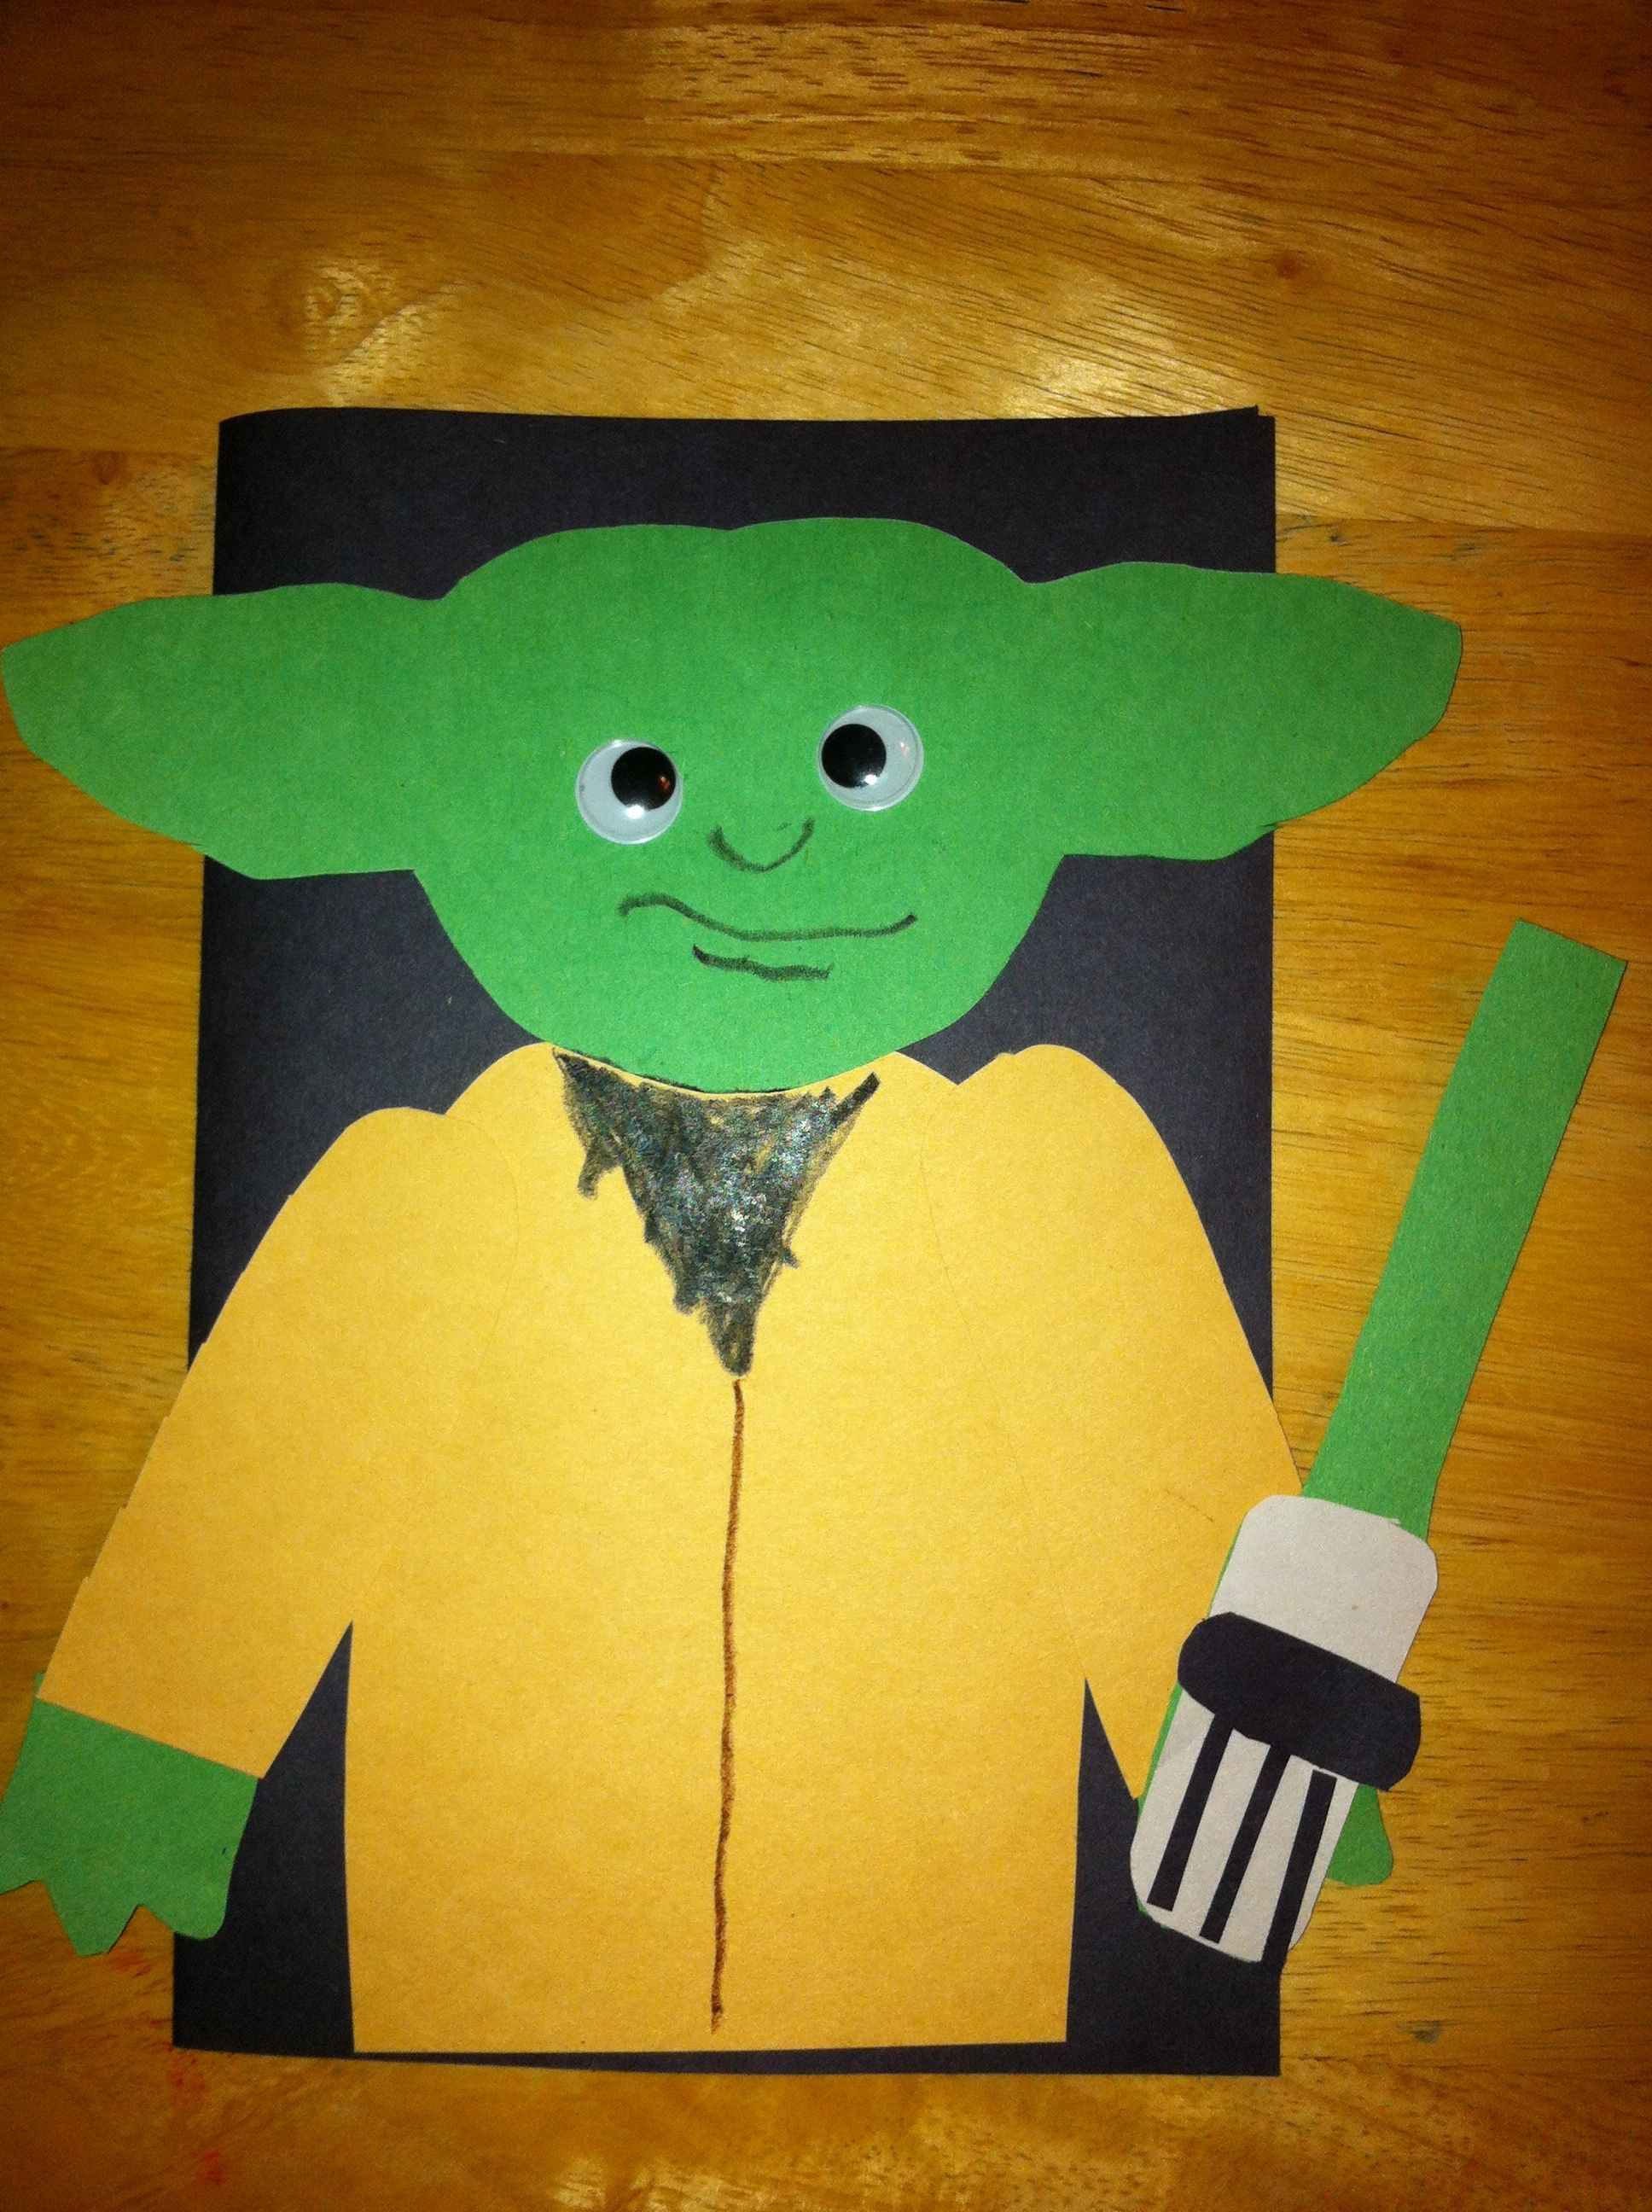 Star Wars Yoda birthday card for Dad made by the kids The kids – Birthday Card for Dad from Kids